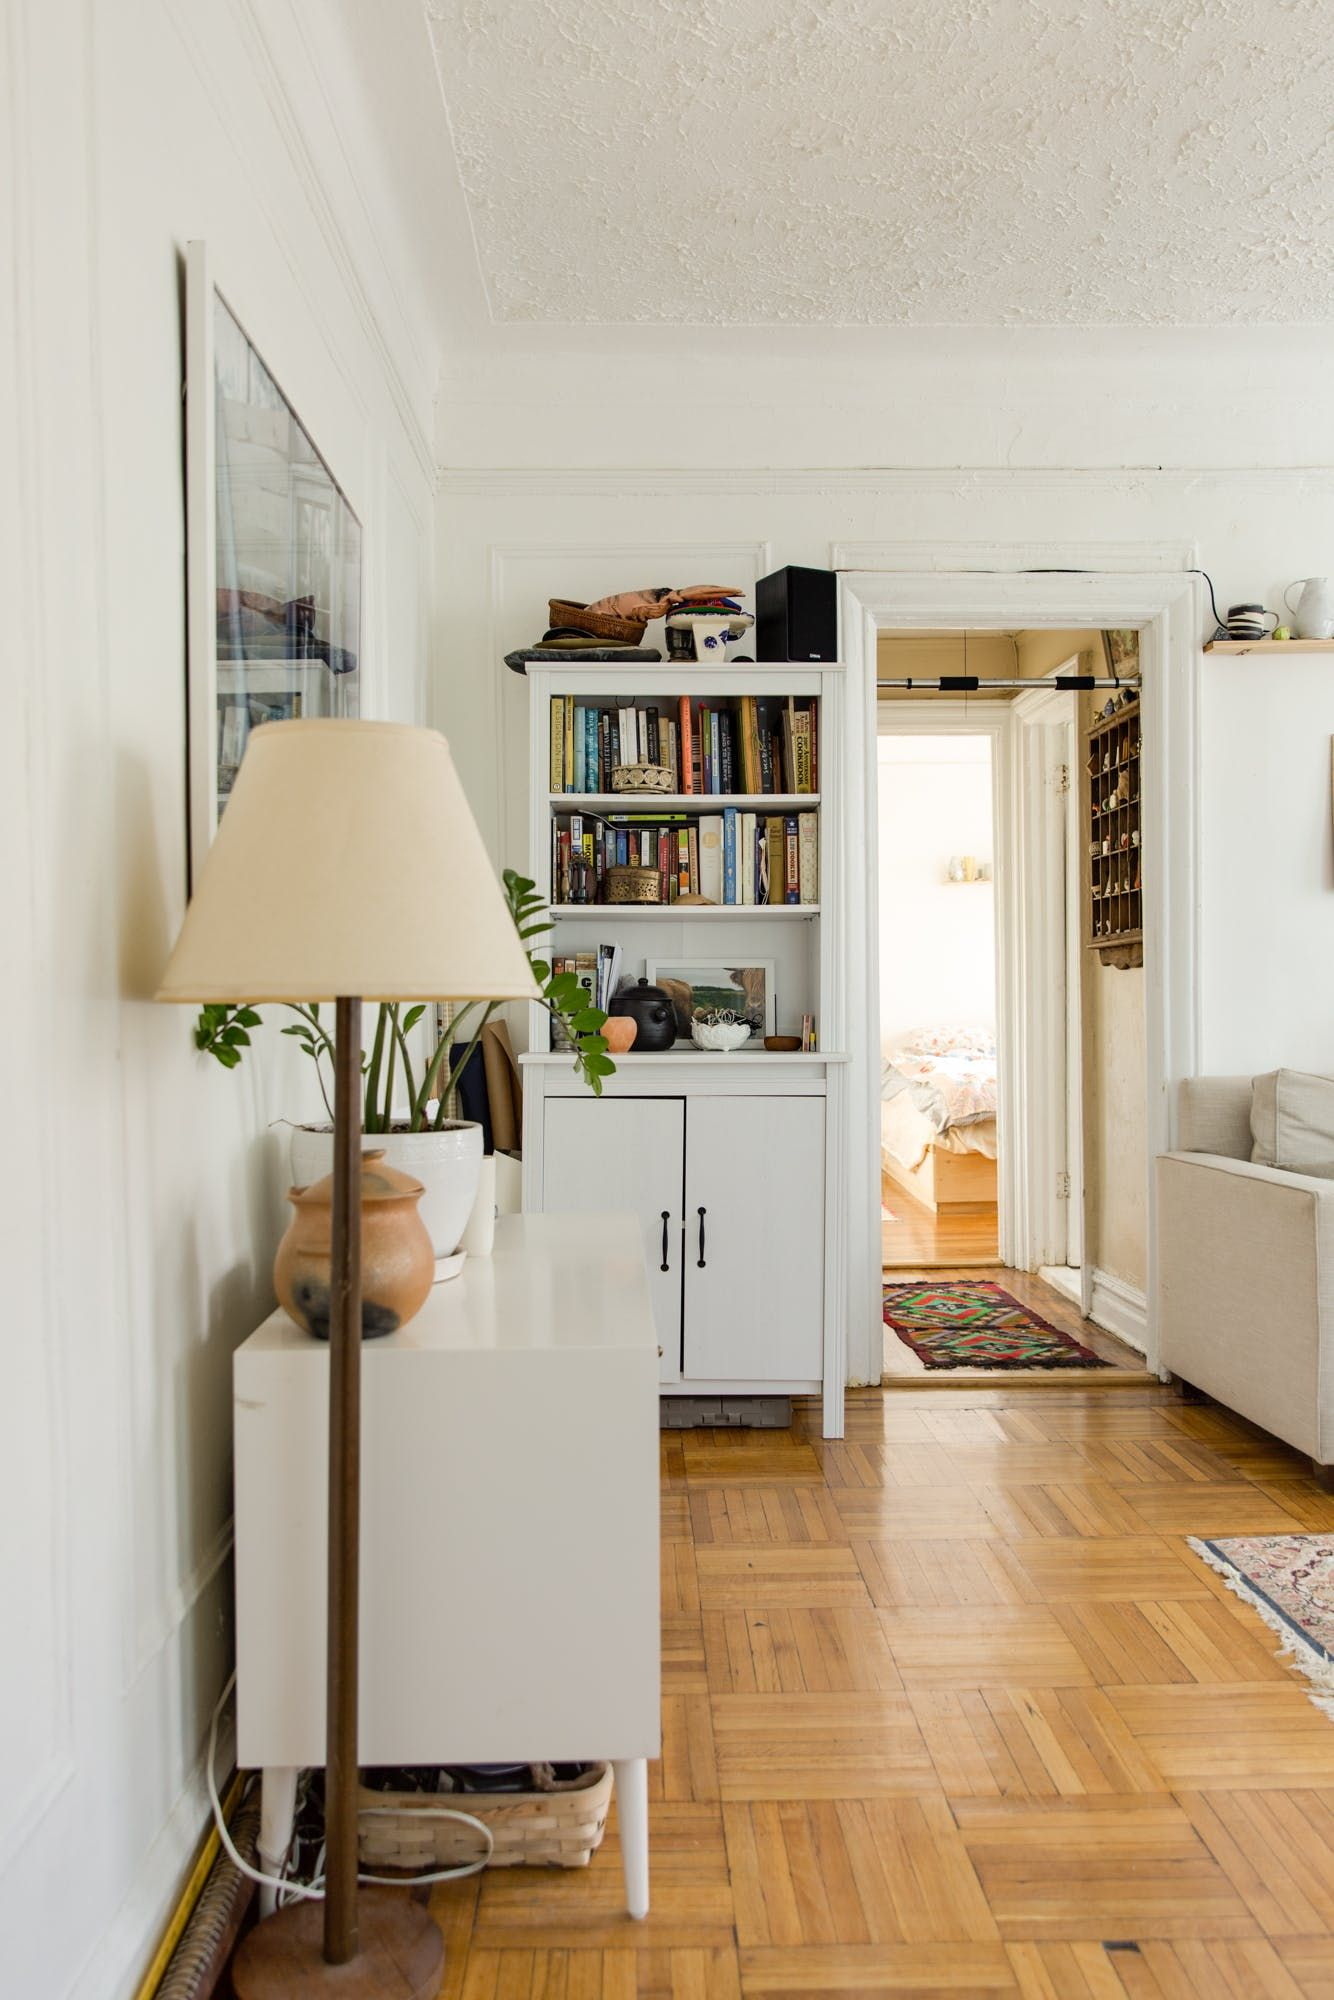 Following The Kitchen, Guests Walk Directly Into The Living Room